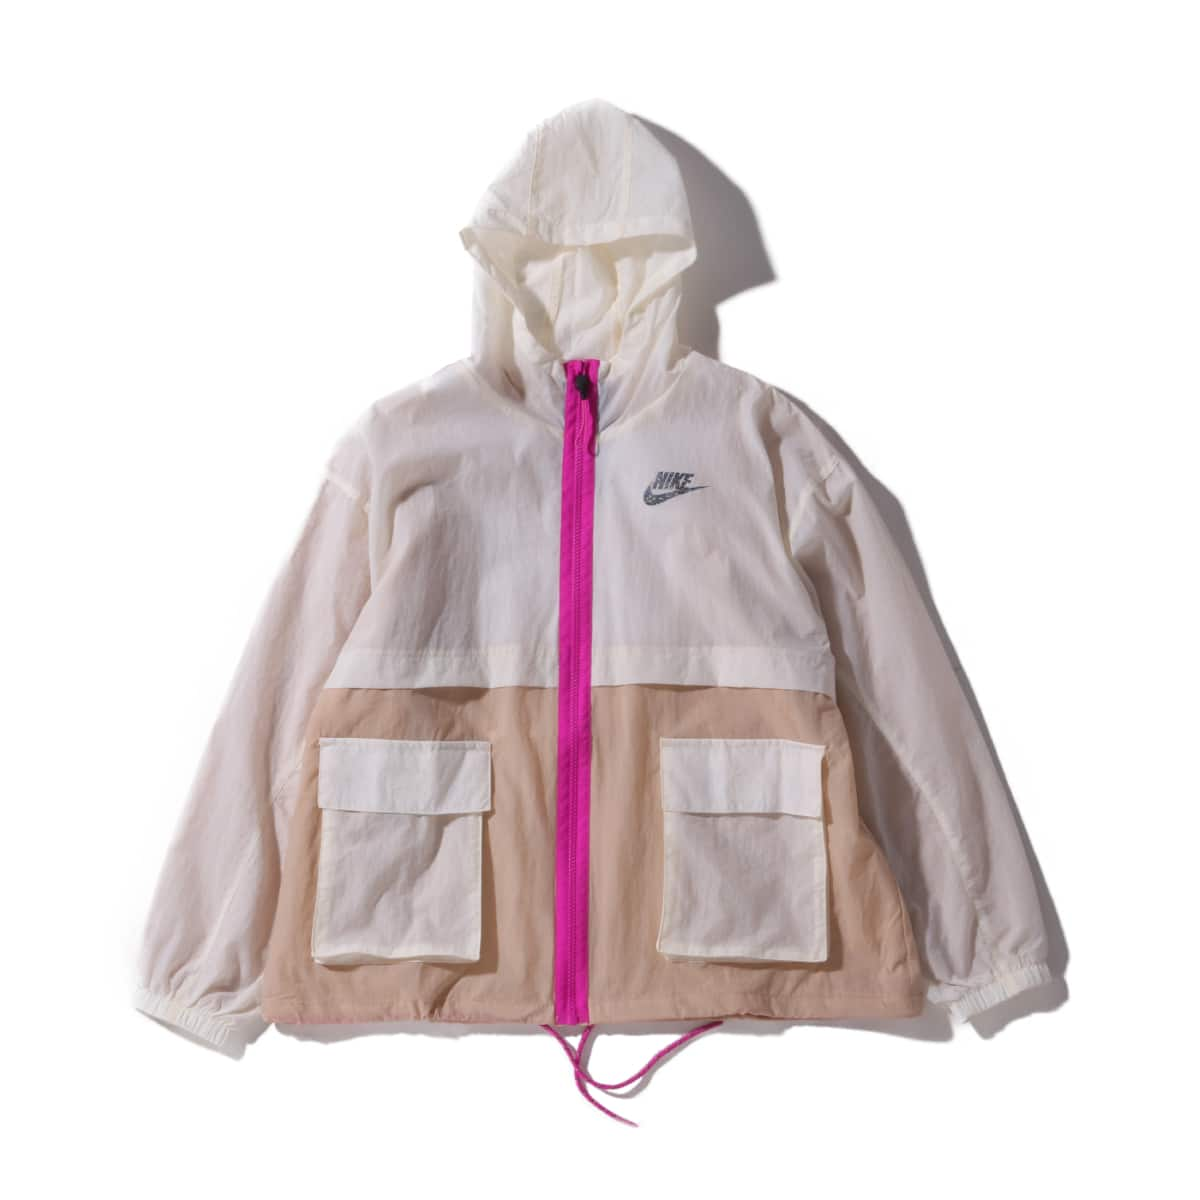 NIKE AS W NSW ICN CLSH JKT WVN PALE IVORY/SHIMMER/FIRE PINK 20SU-I_photo_large